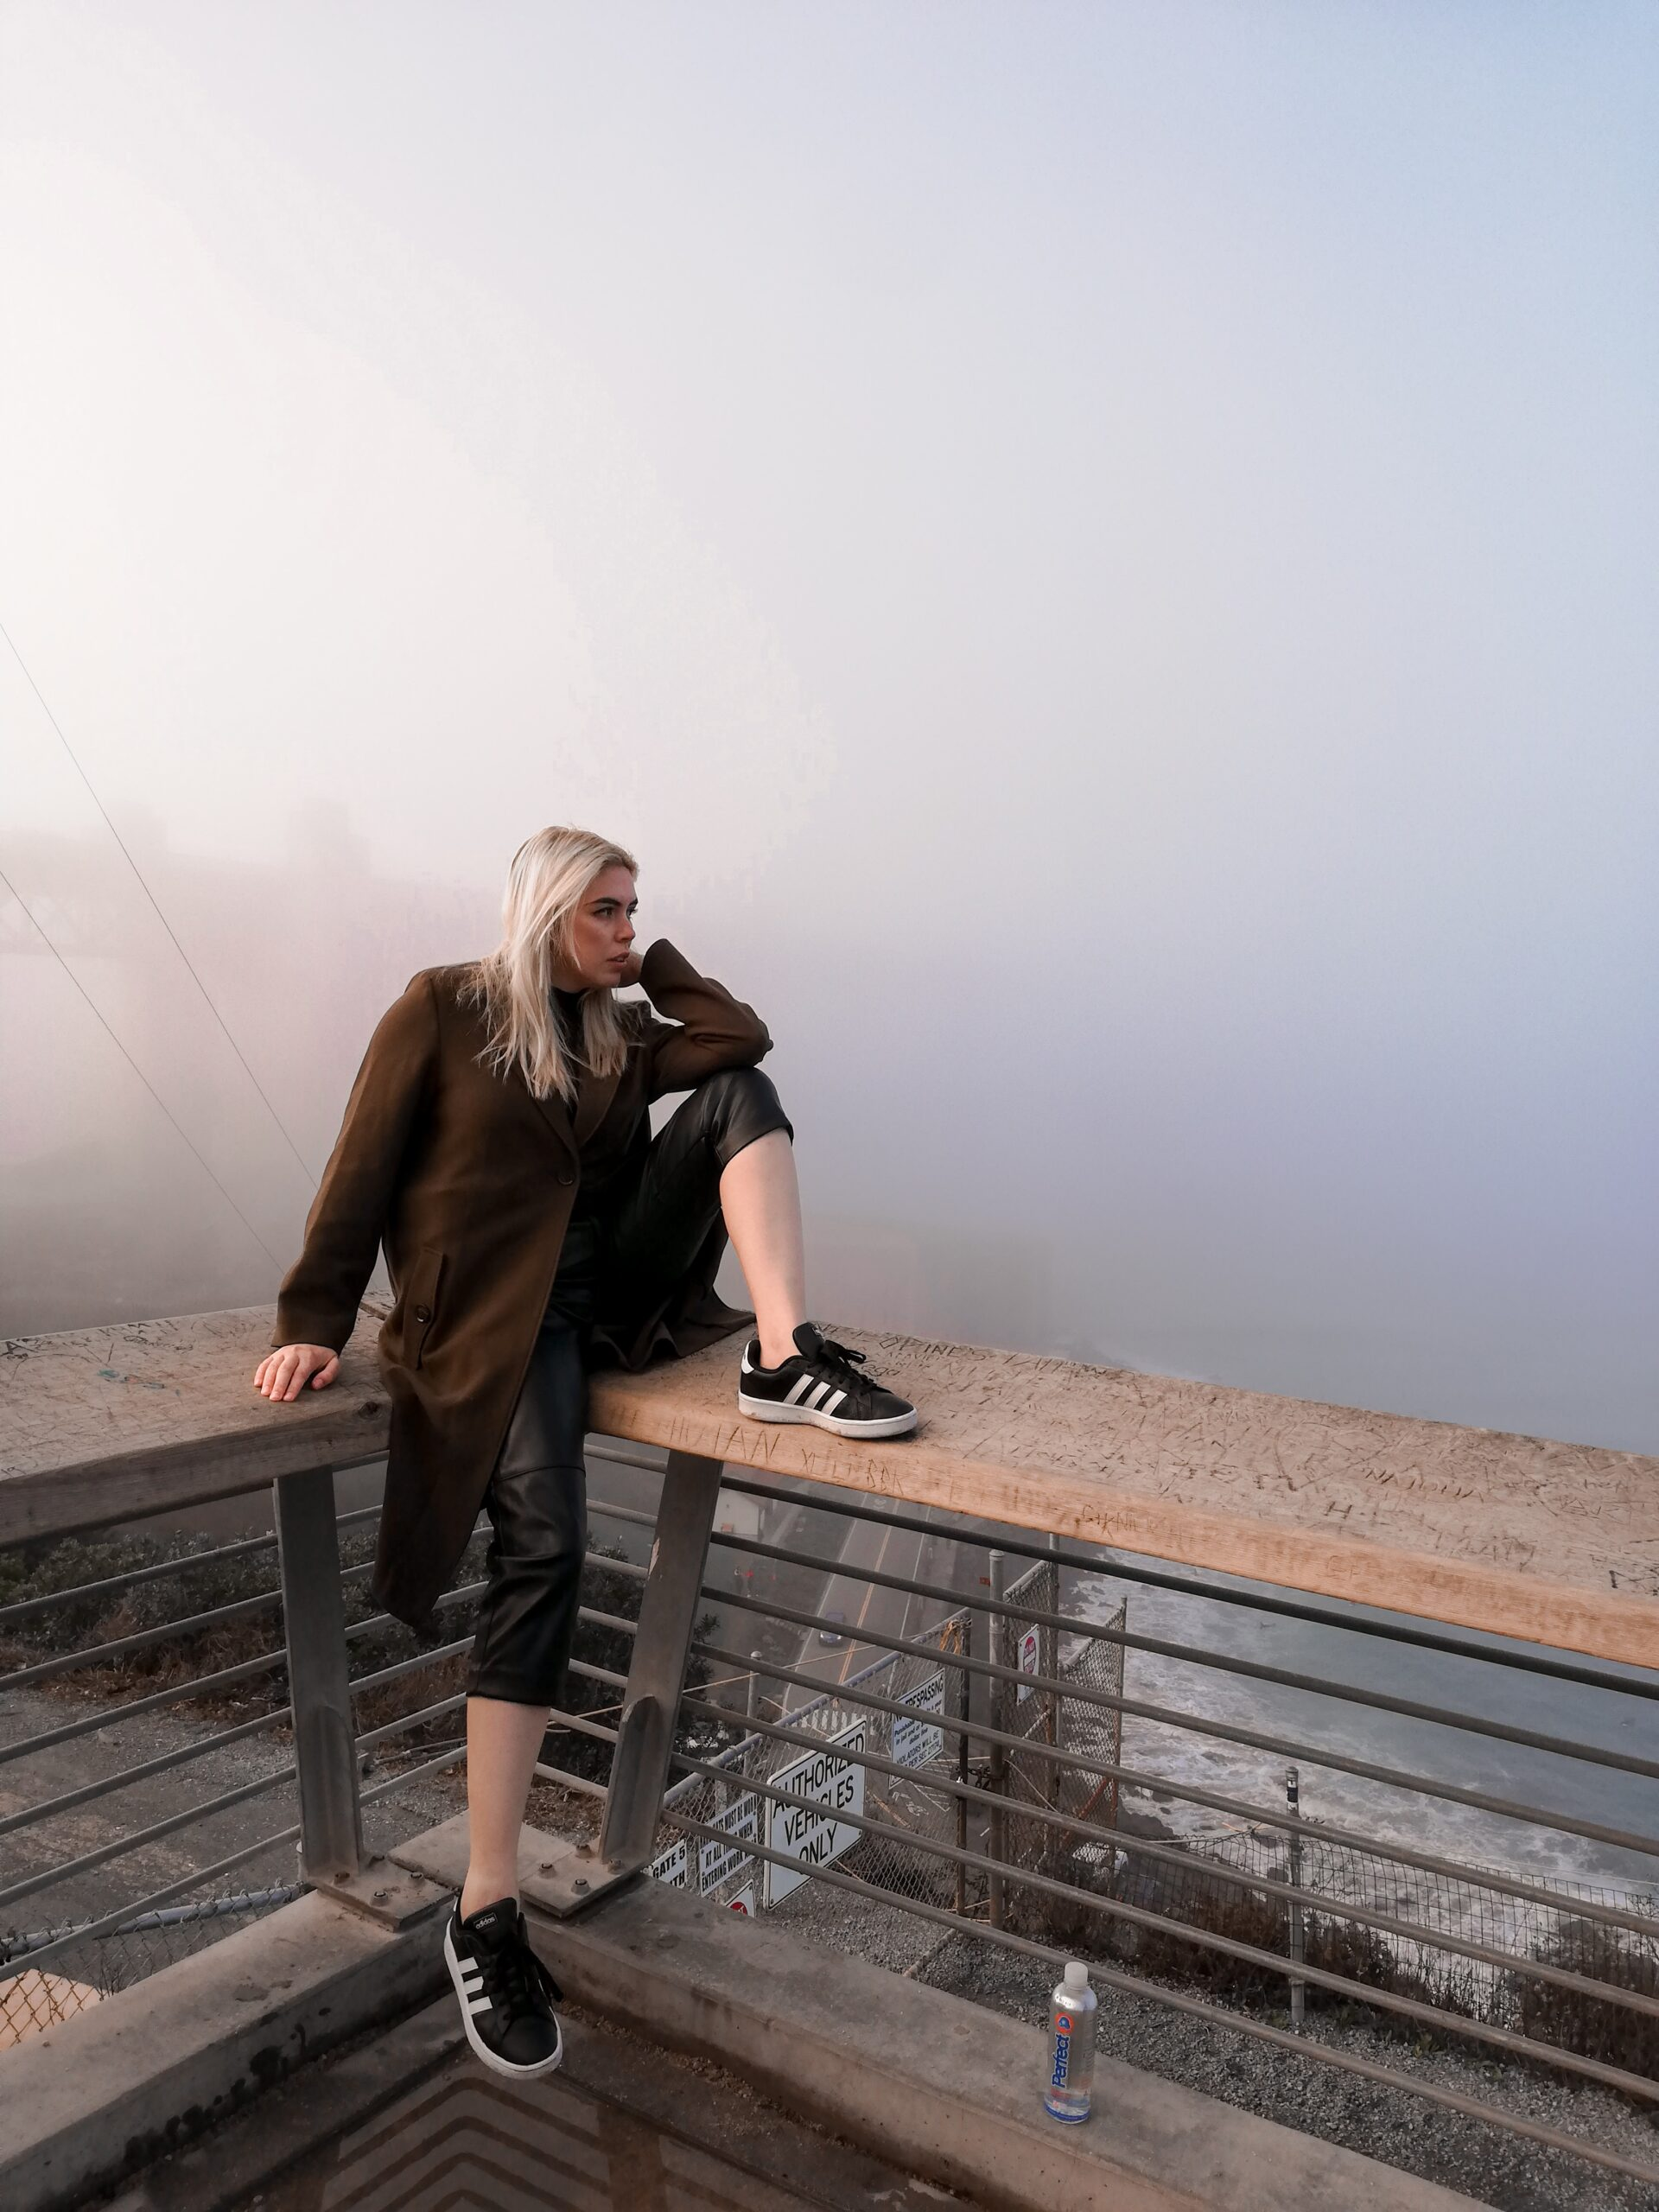 daniela soriano, san francisco, california, golden gate bridge, golden gate park, the fog, leather pants, vegan leather, adidas sneakers, black